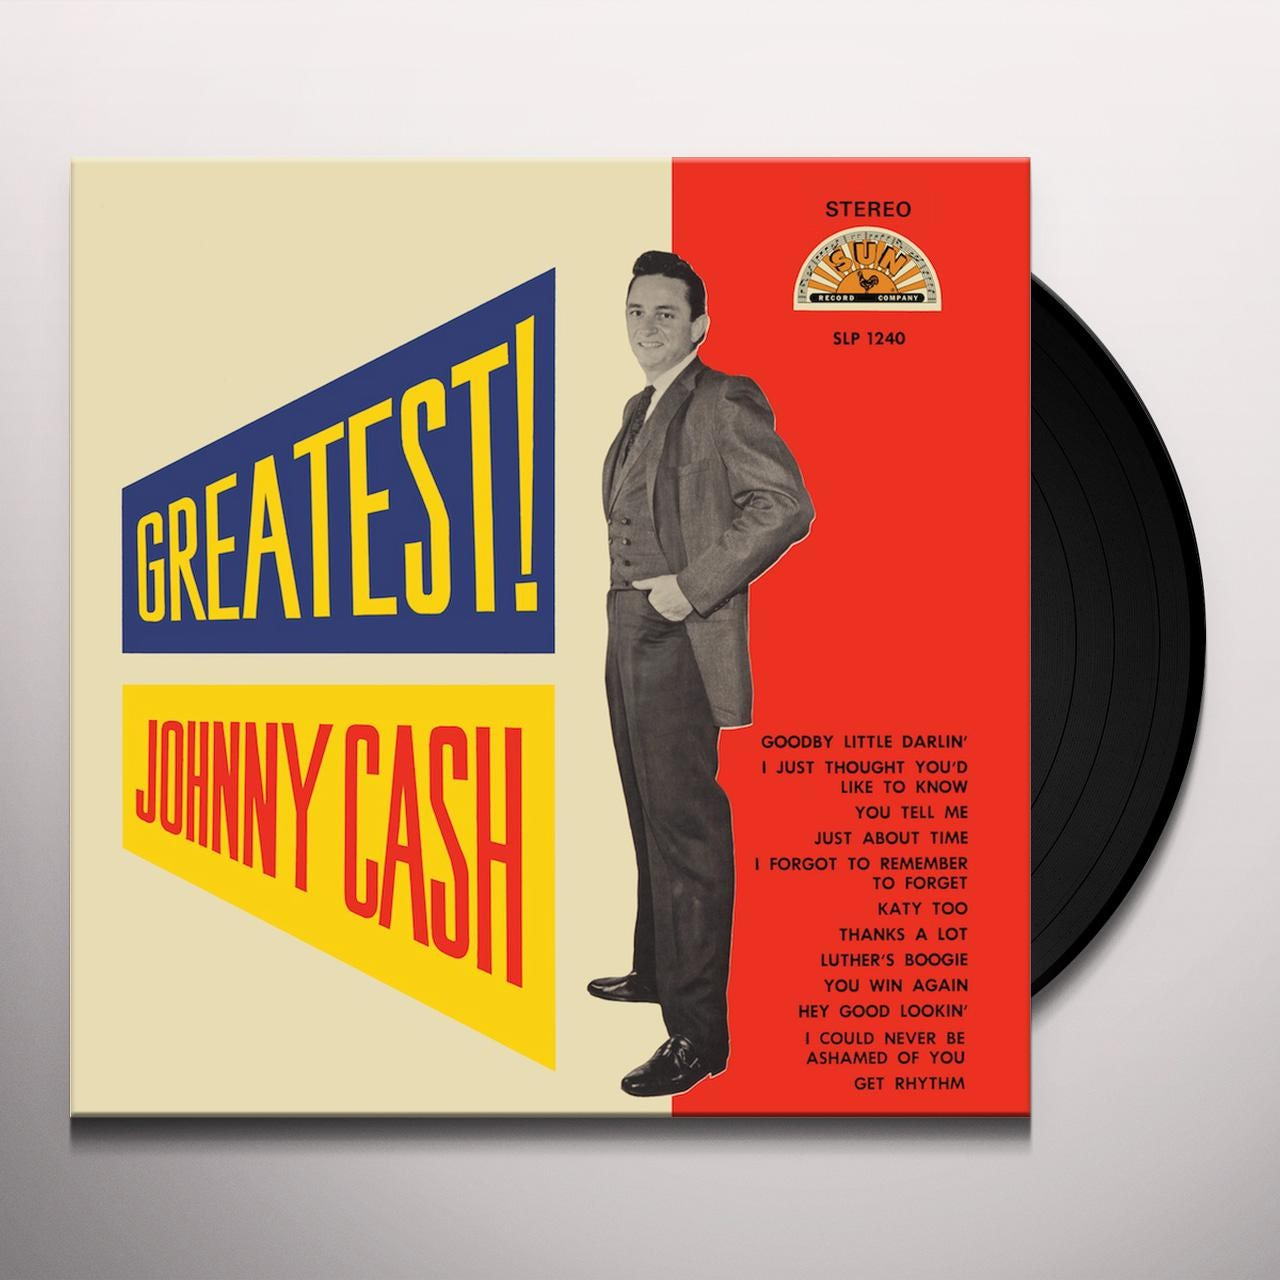 Johnny Cash ‎– Greatest!